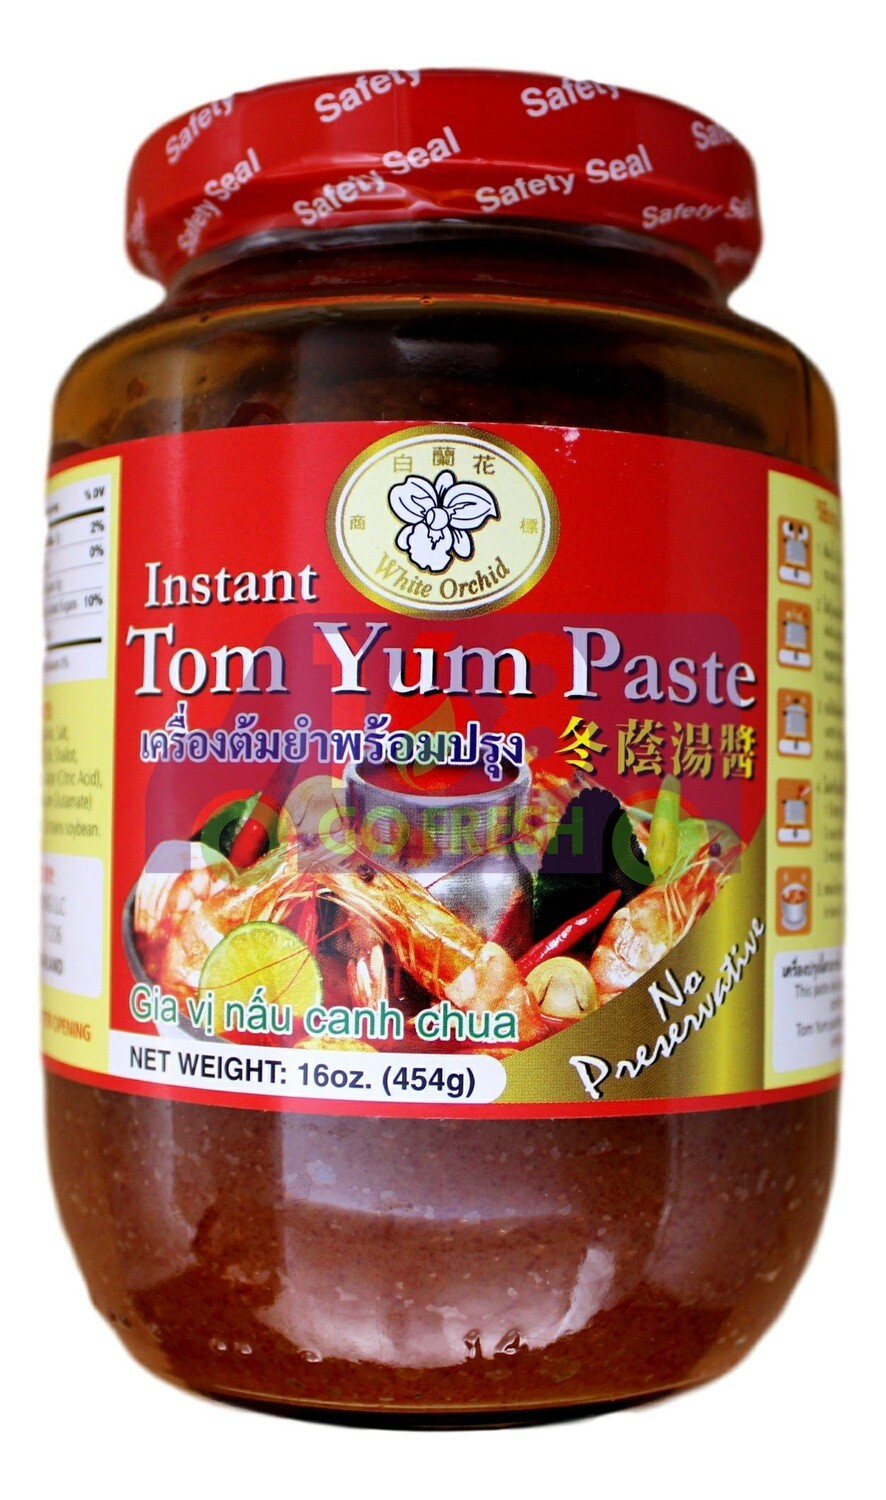 WHITE ORCHID INSTANT TOM YUM PASTE 白兰花 冬阴汤酱(16OZ)